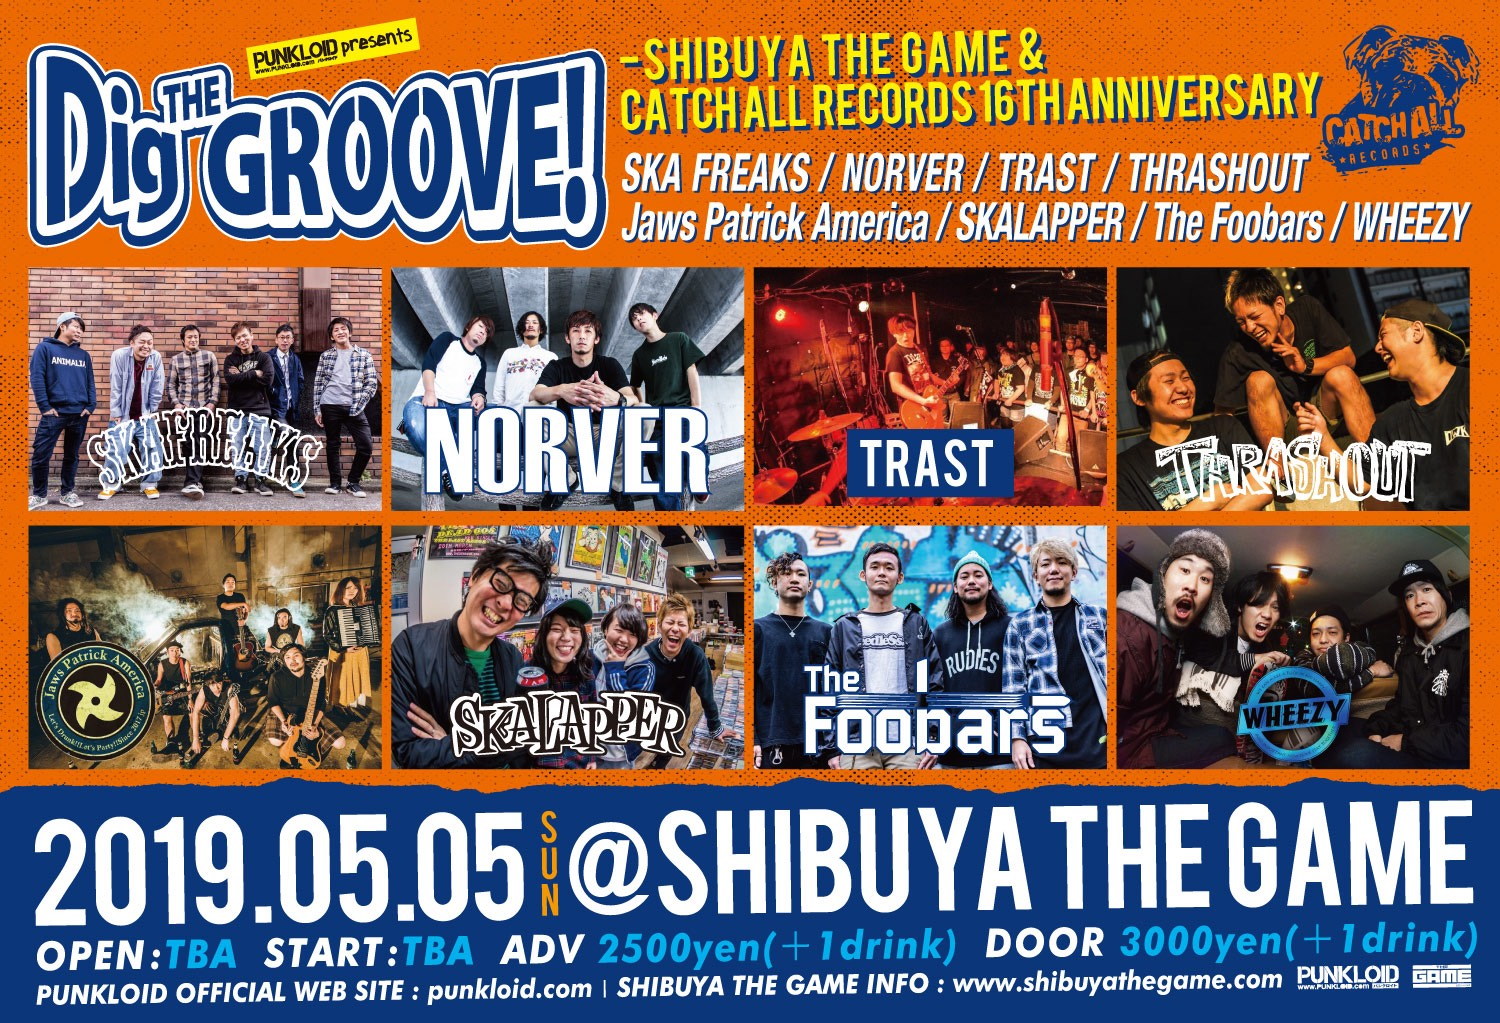 Dig THE GROOVE!